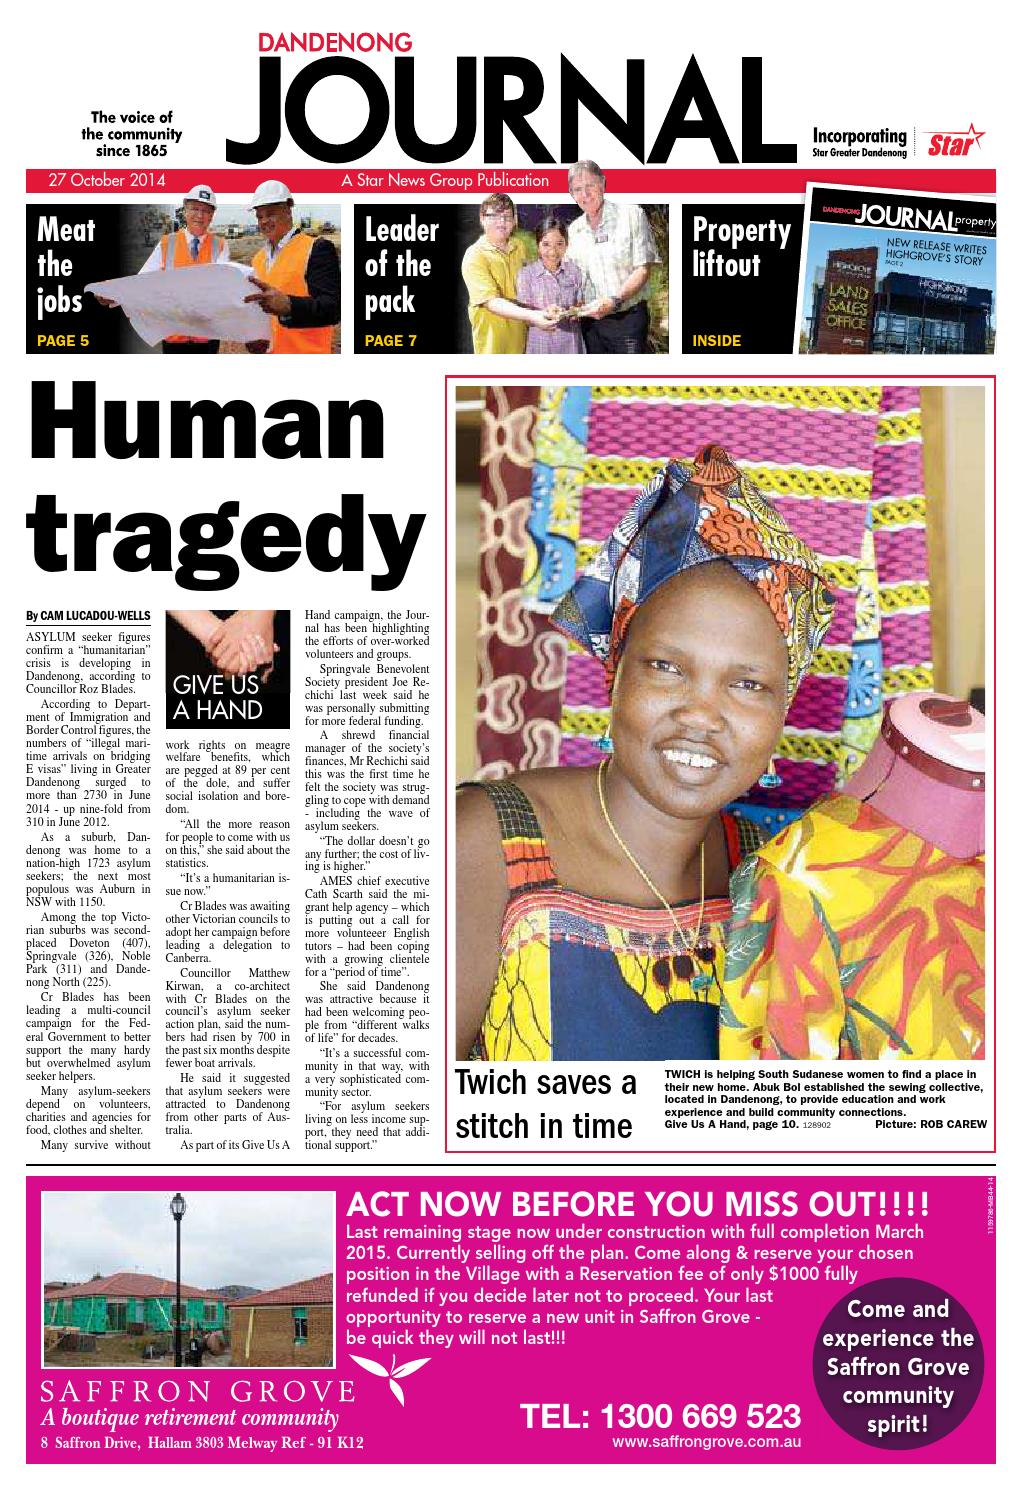 Dandenong Journal Star 27th October 2014 By Star News Group Issuu